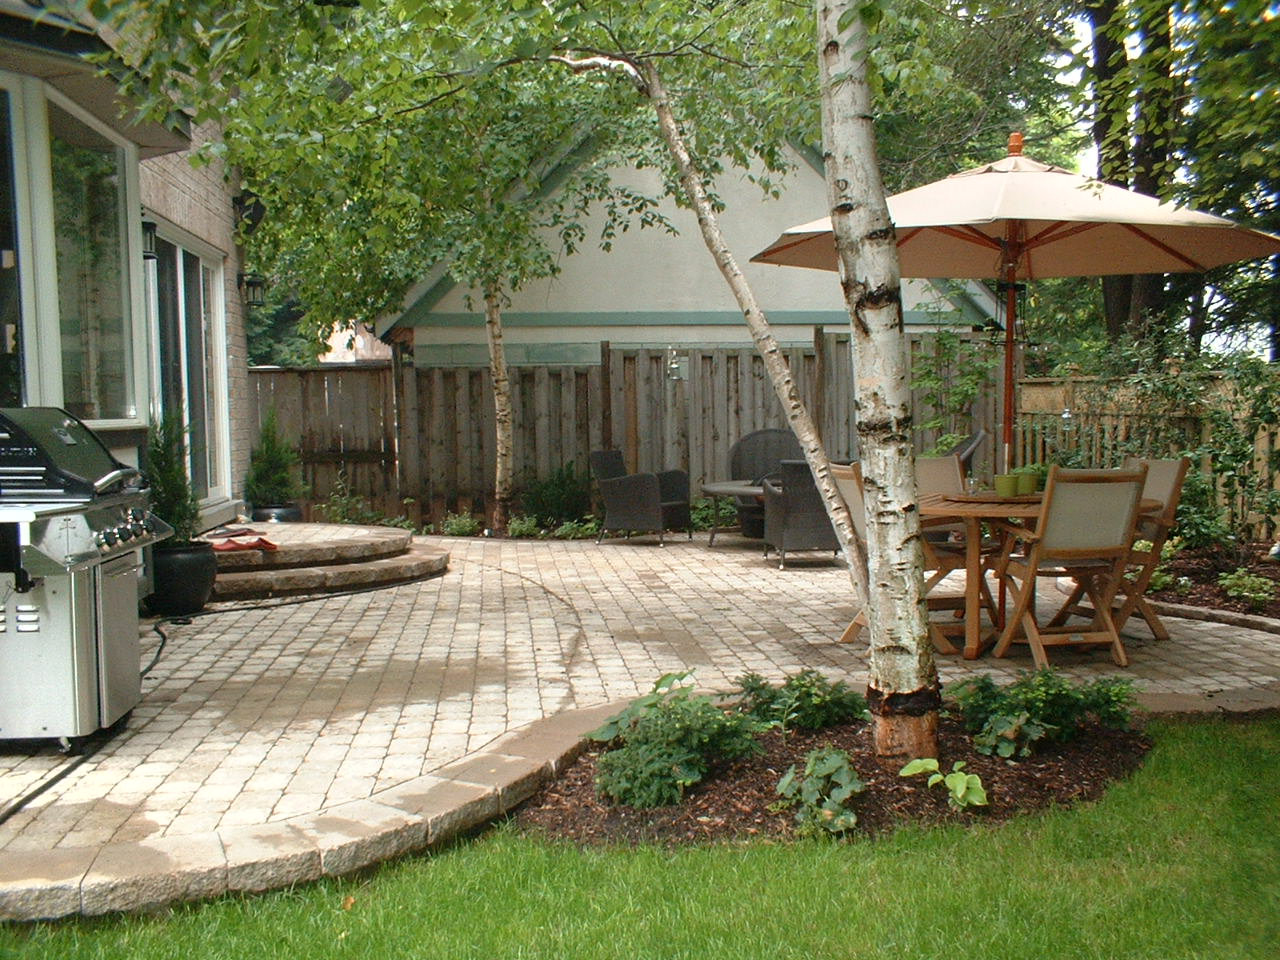 side view of patio from lawn